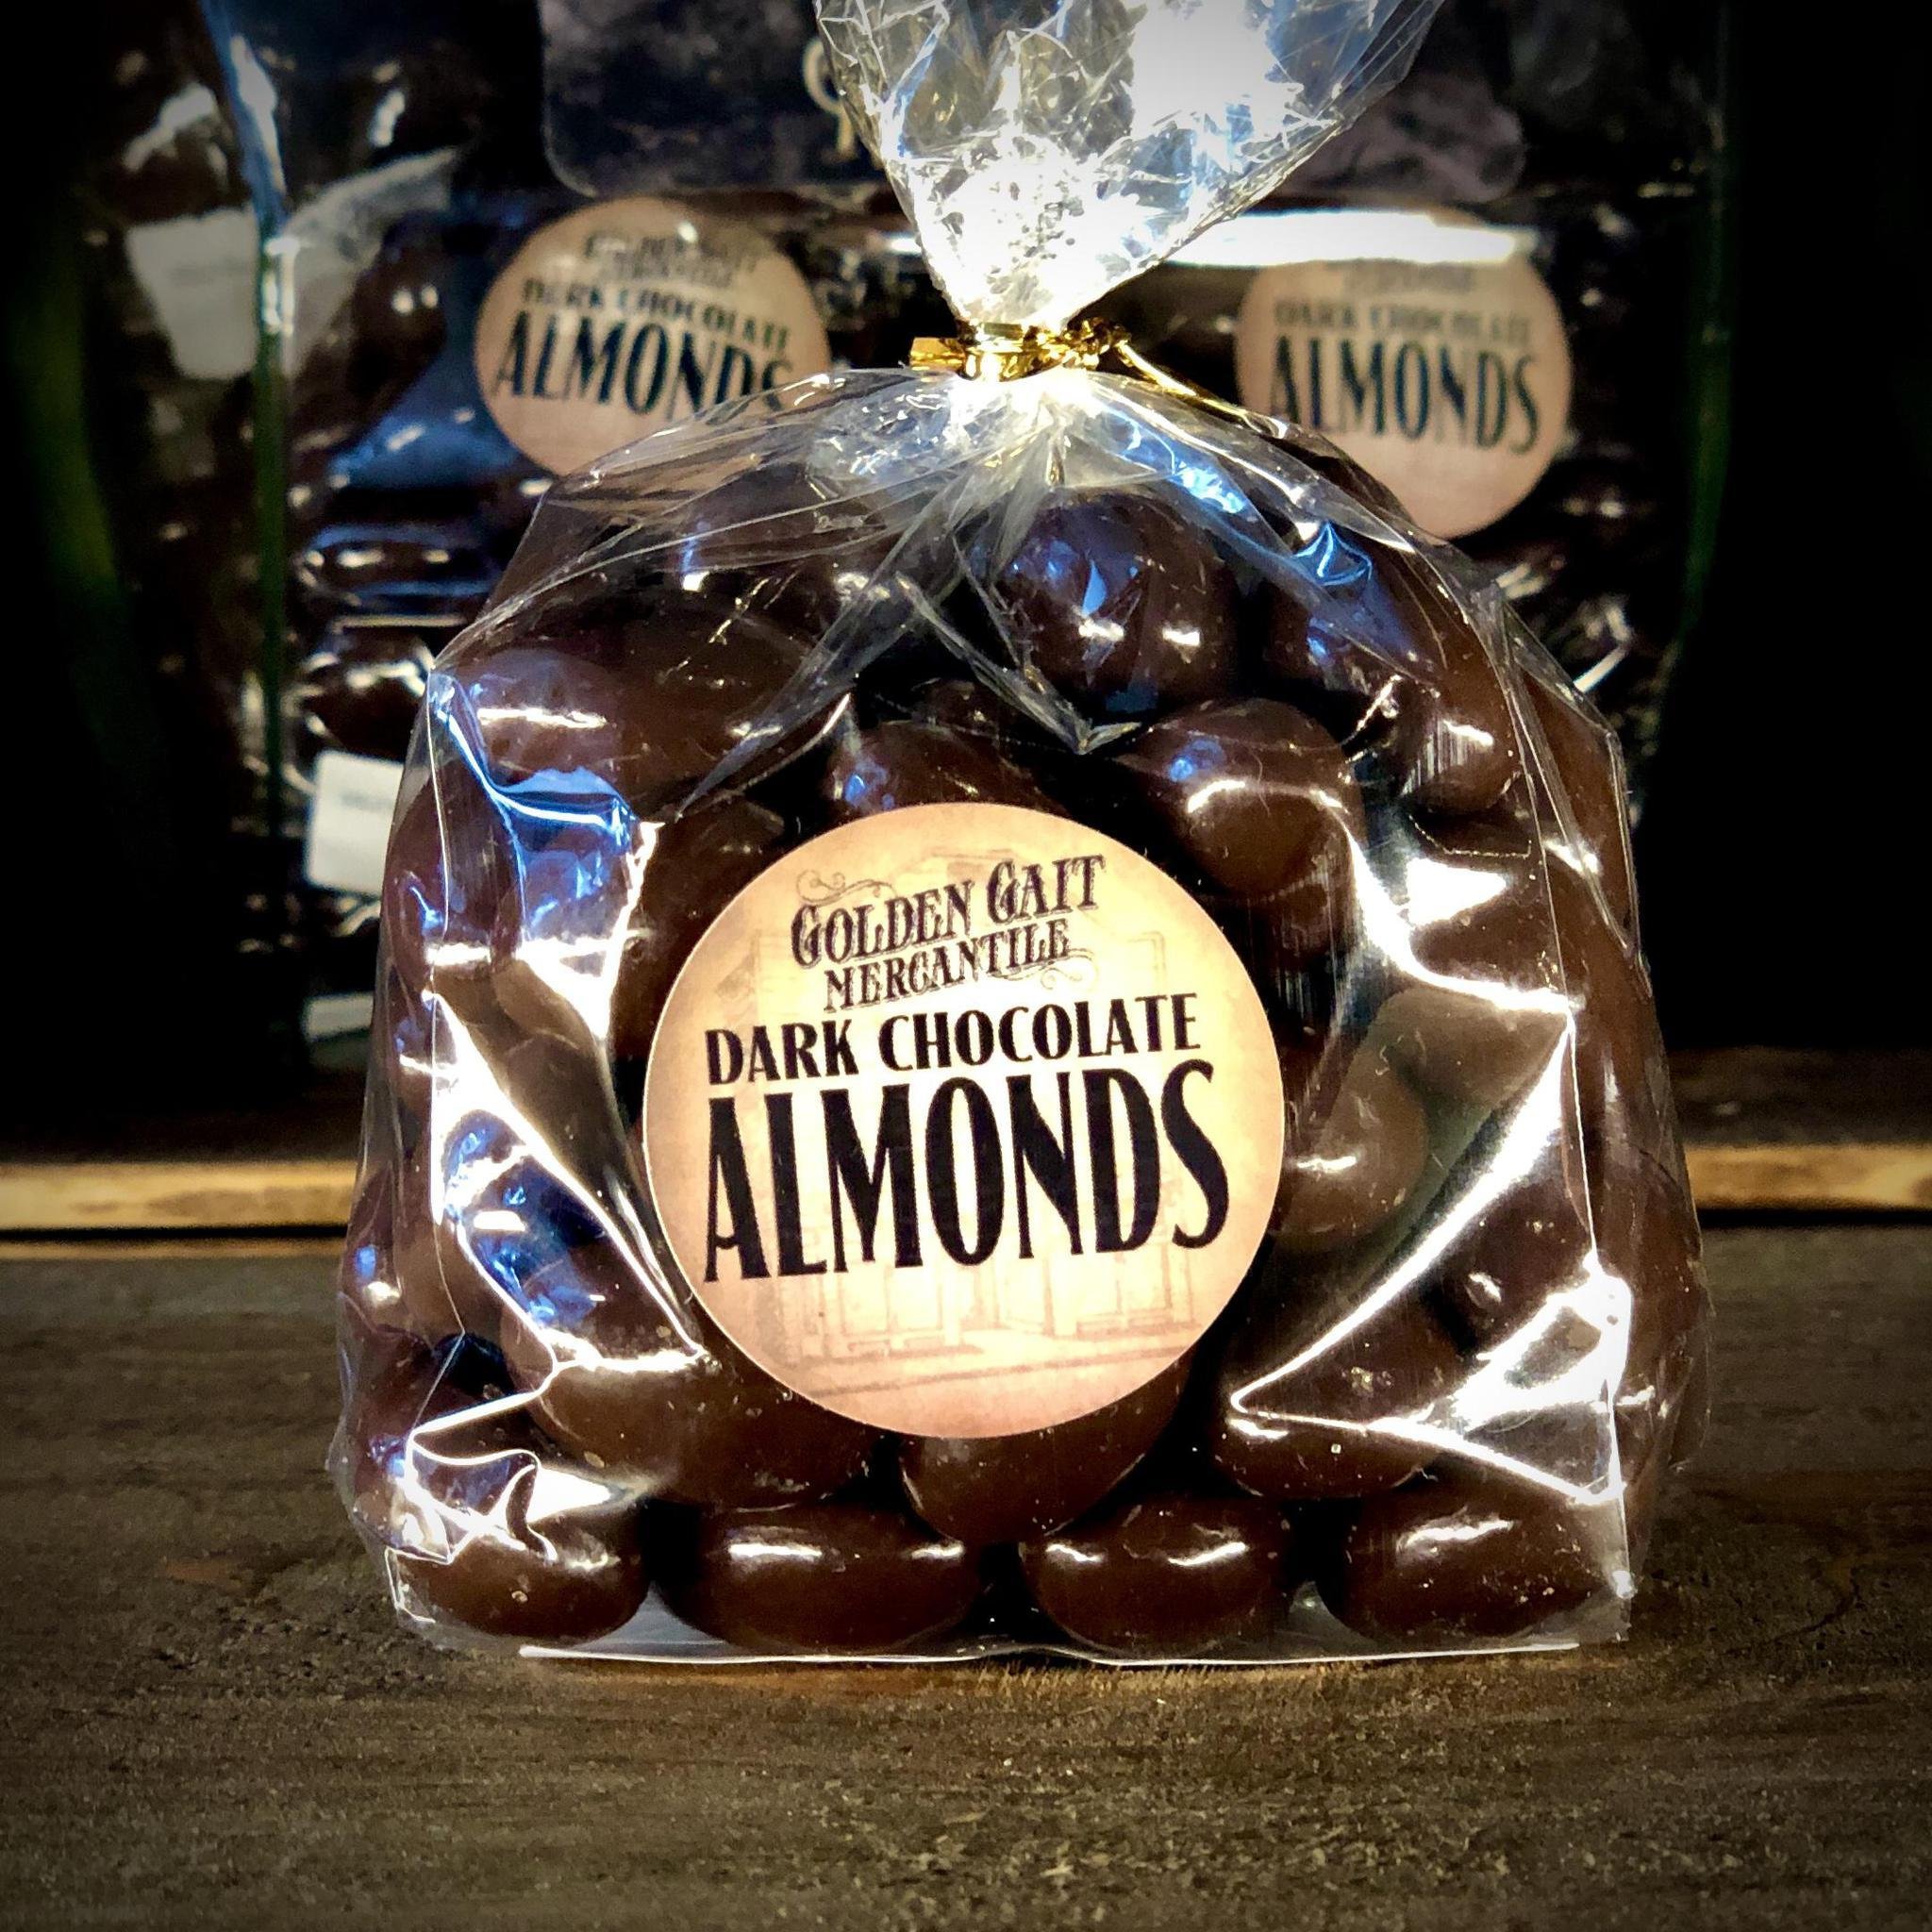 Dark Chocolate Almonds By The Golden Gait Mercantile